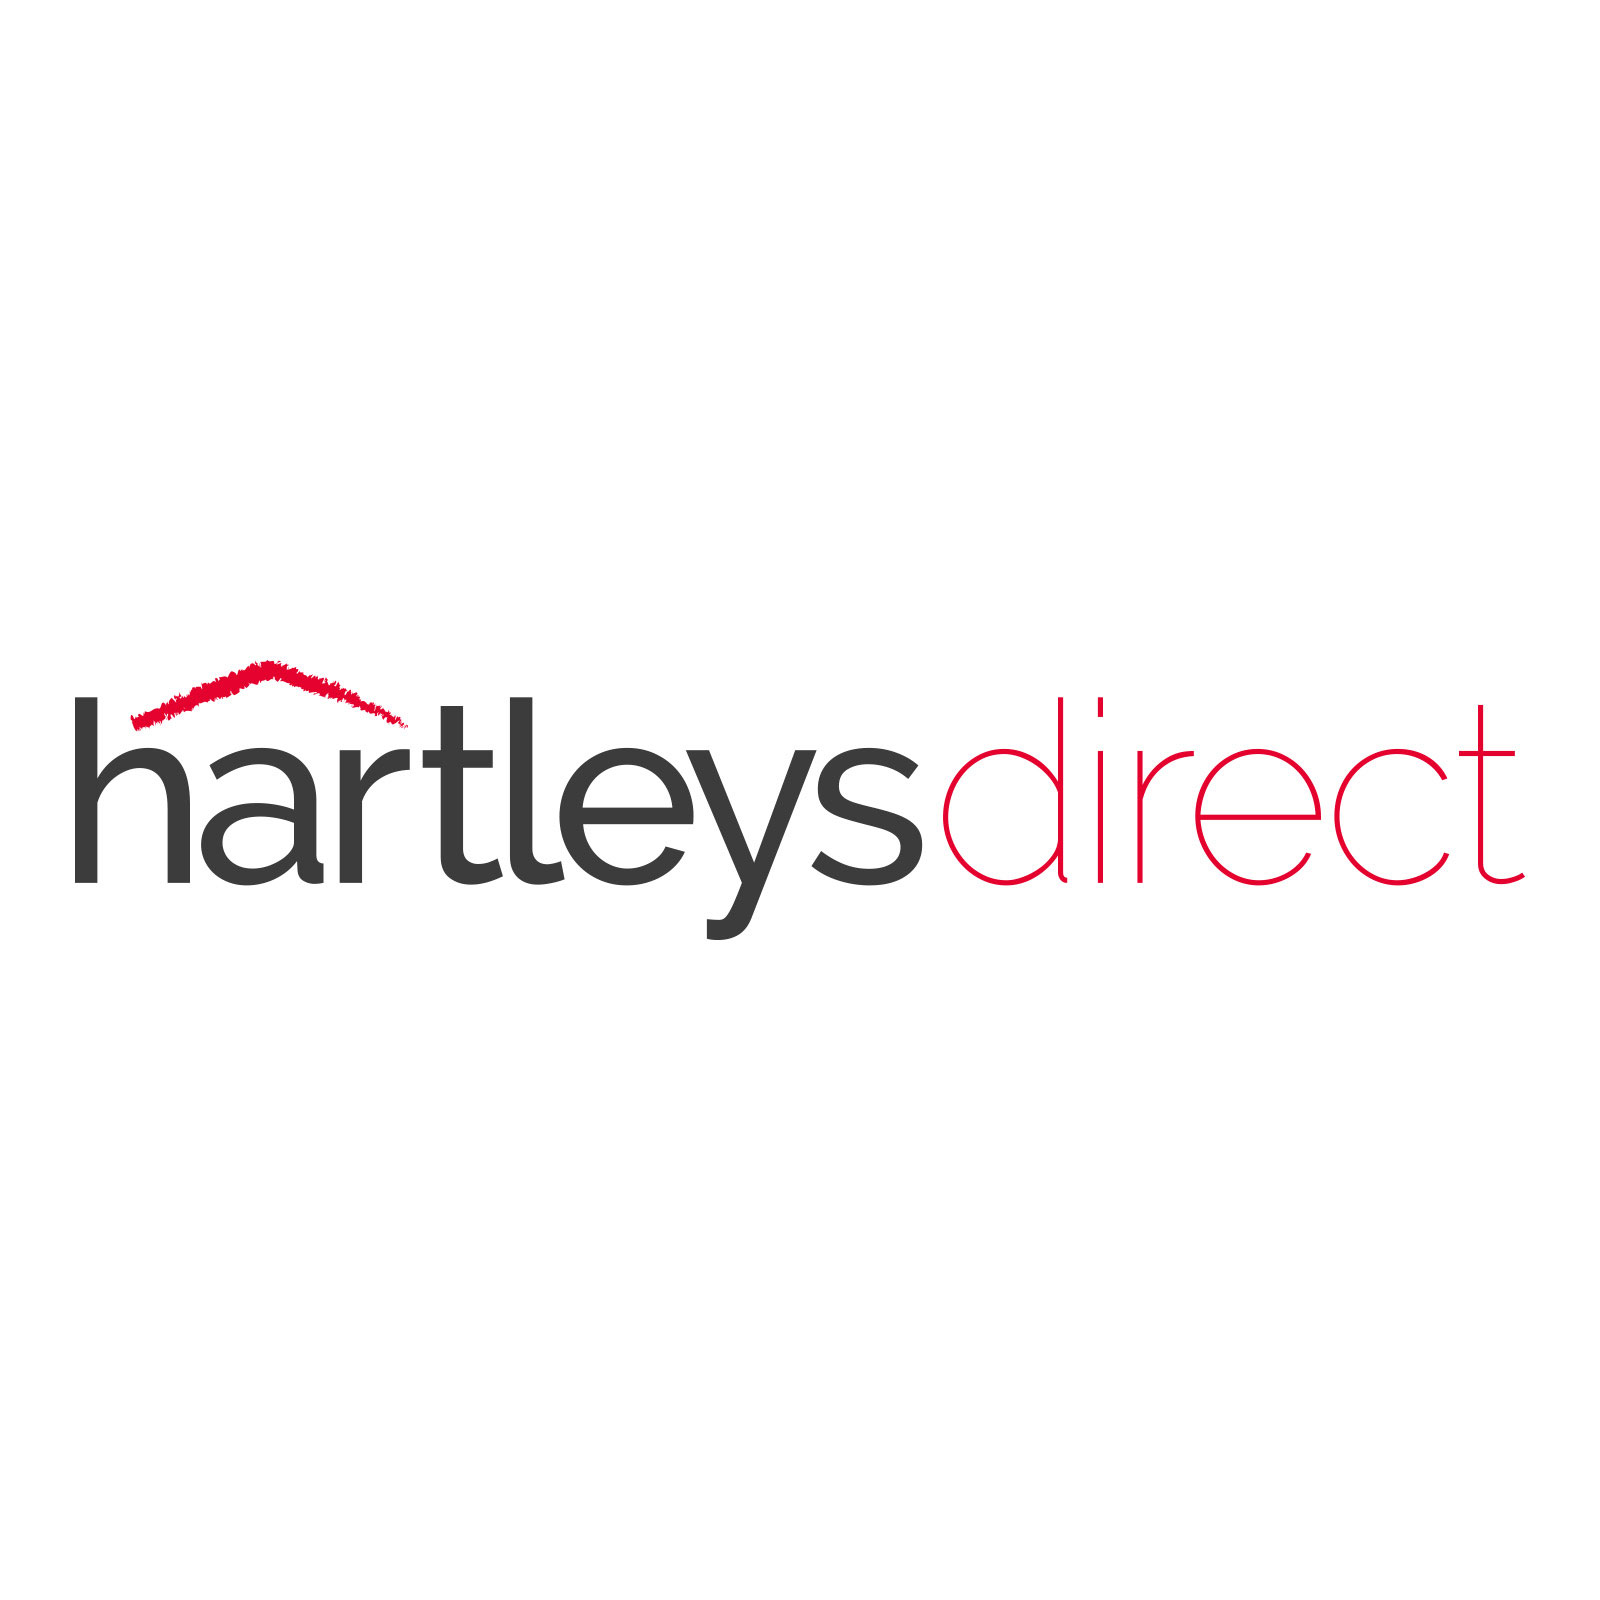 Hartleys-2-Cube-Kids-Coat-Stand-on-White-Background-with-Clothes.jpg